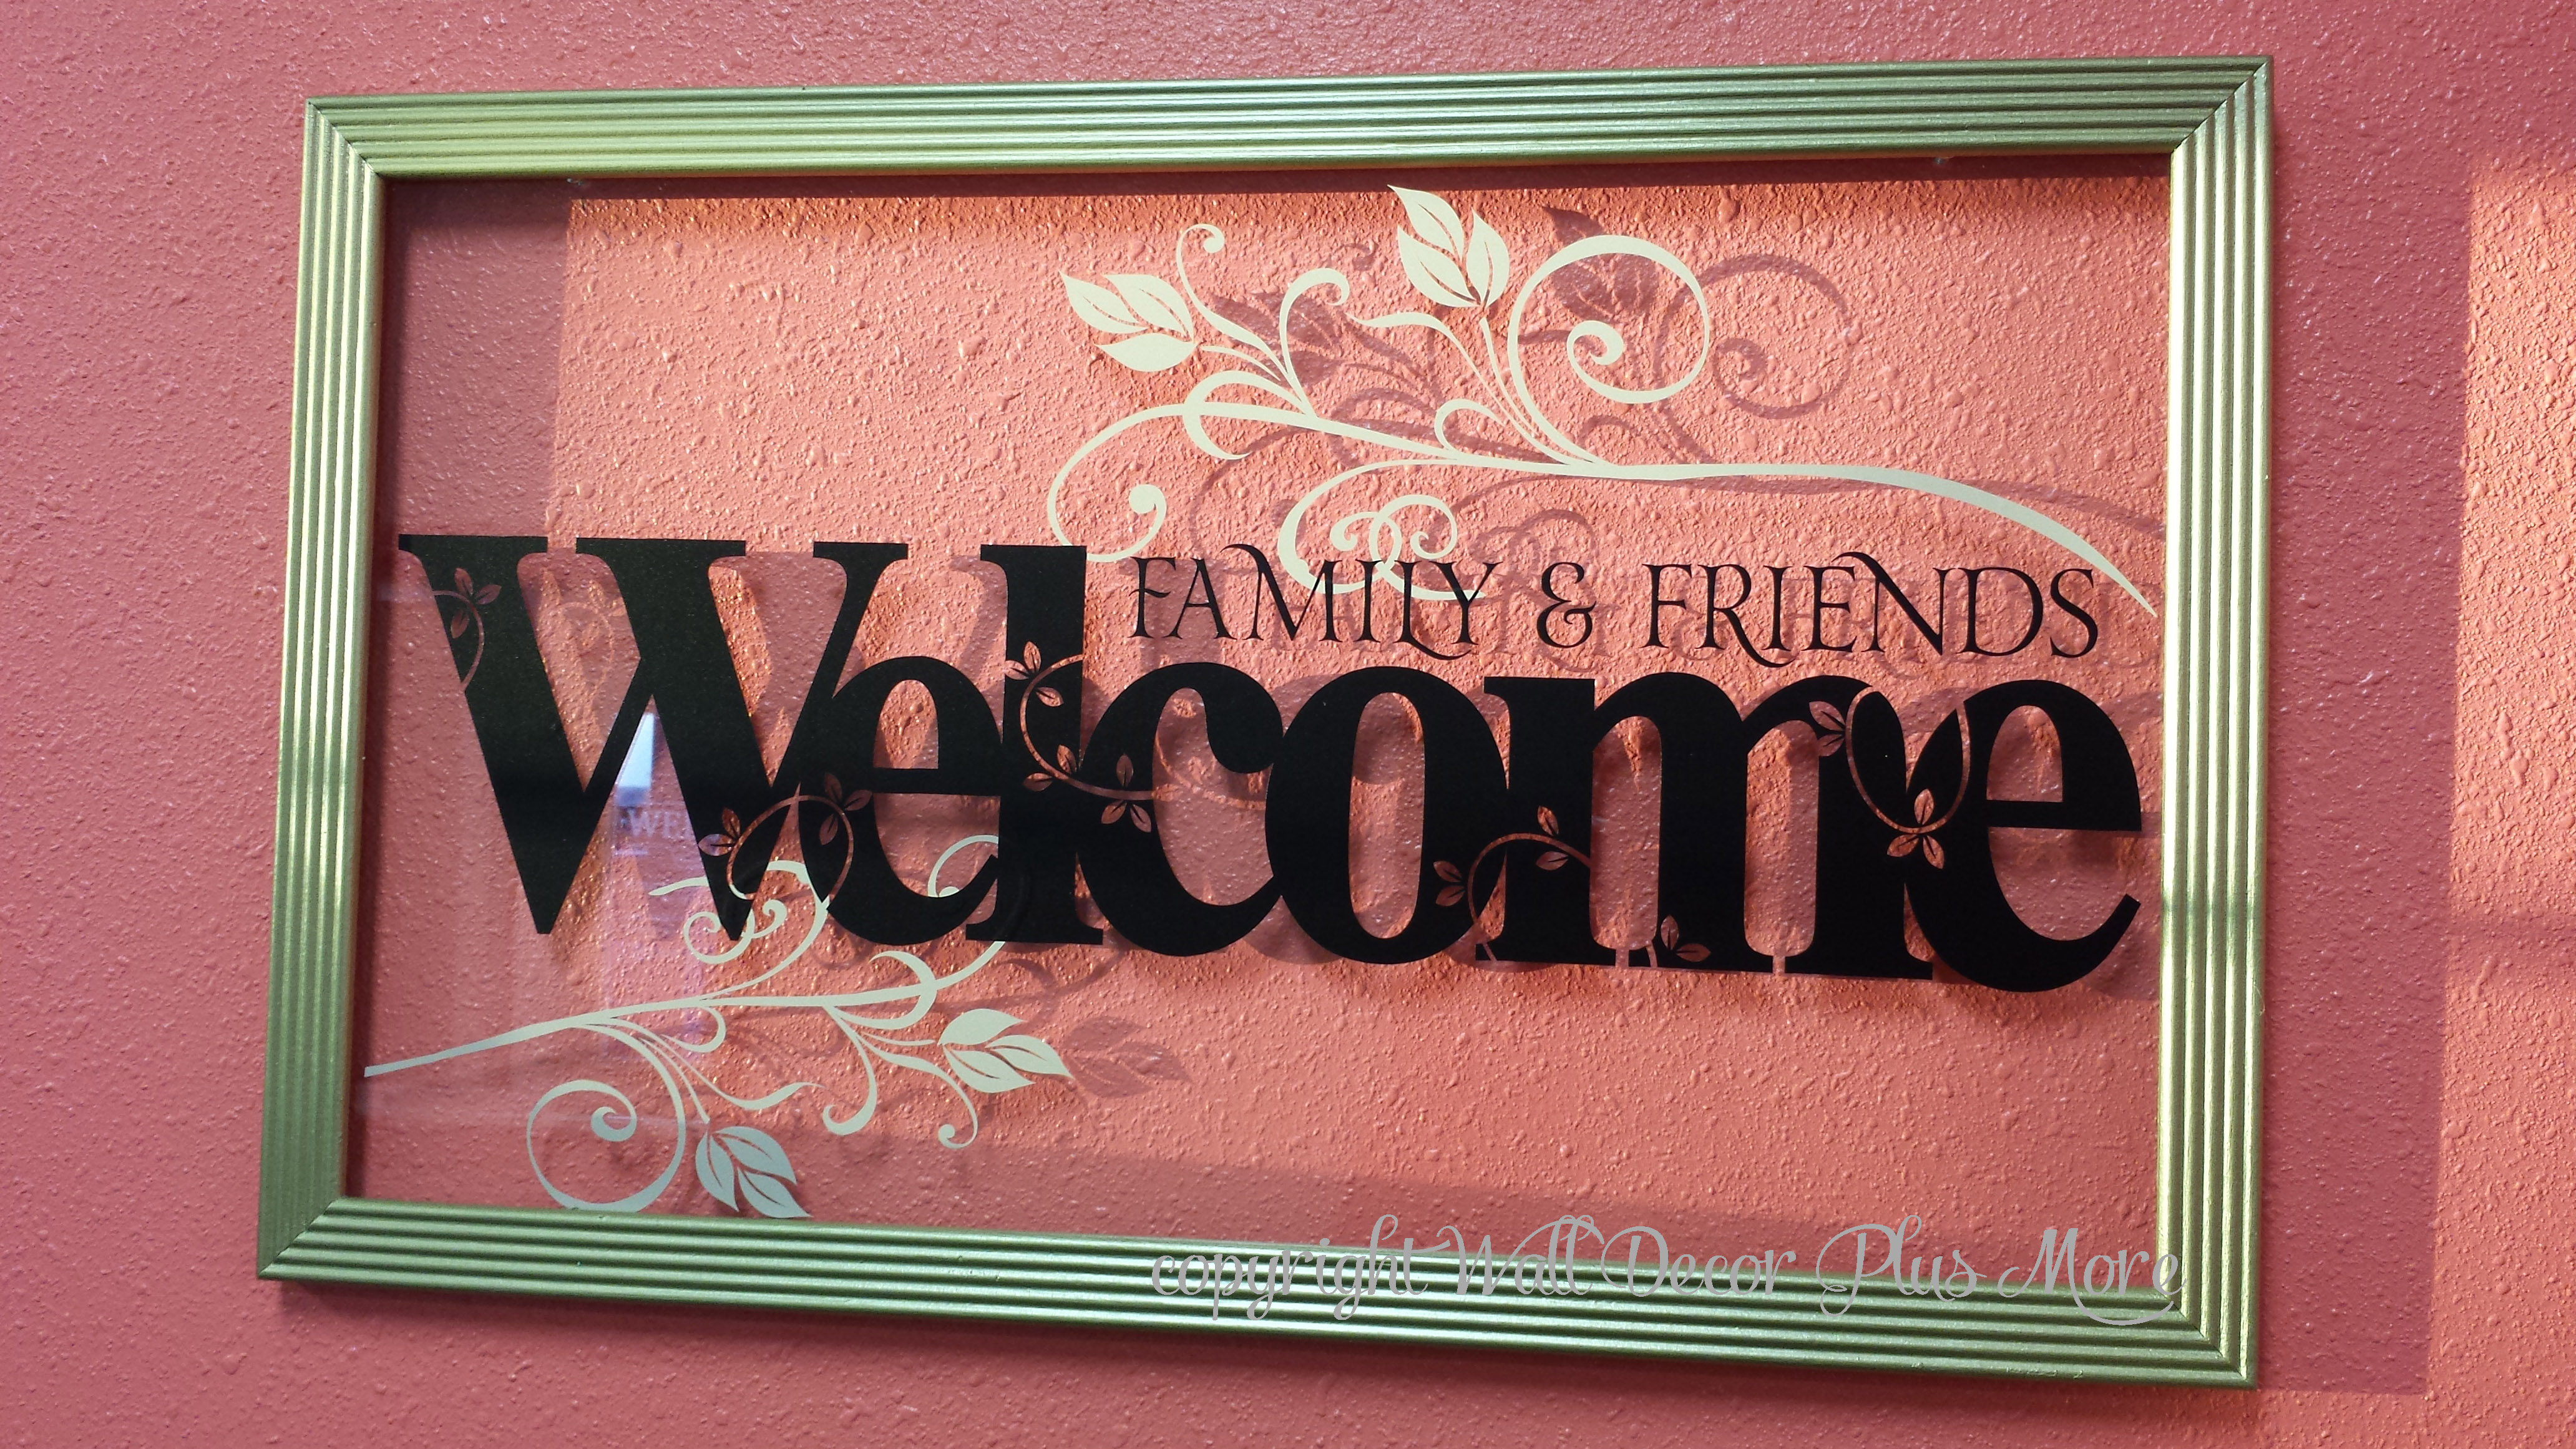 florals decorate the glass of floating frame along with welcome lettering